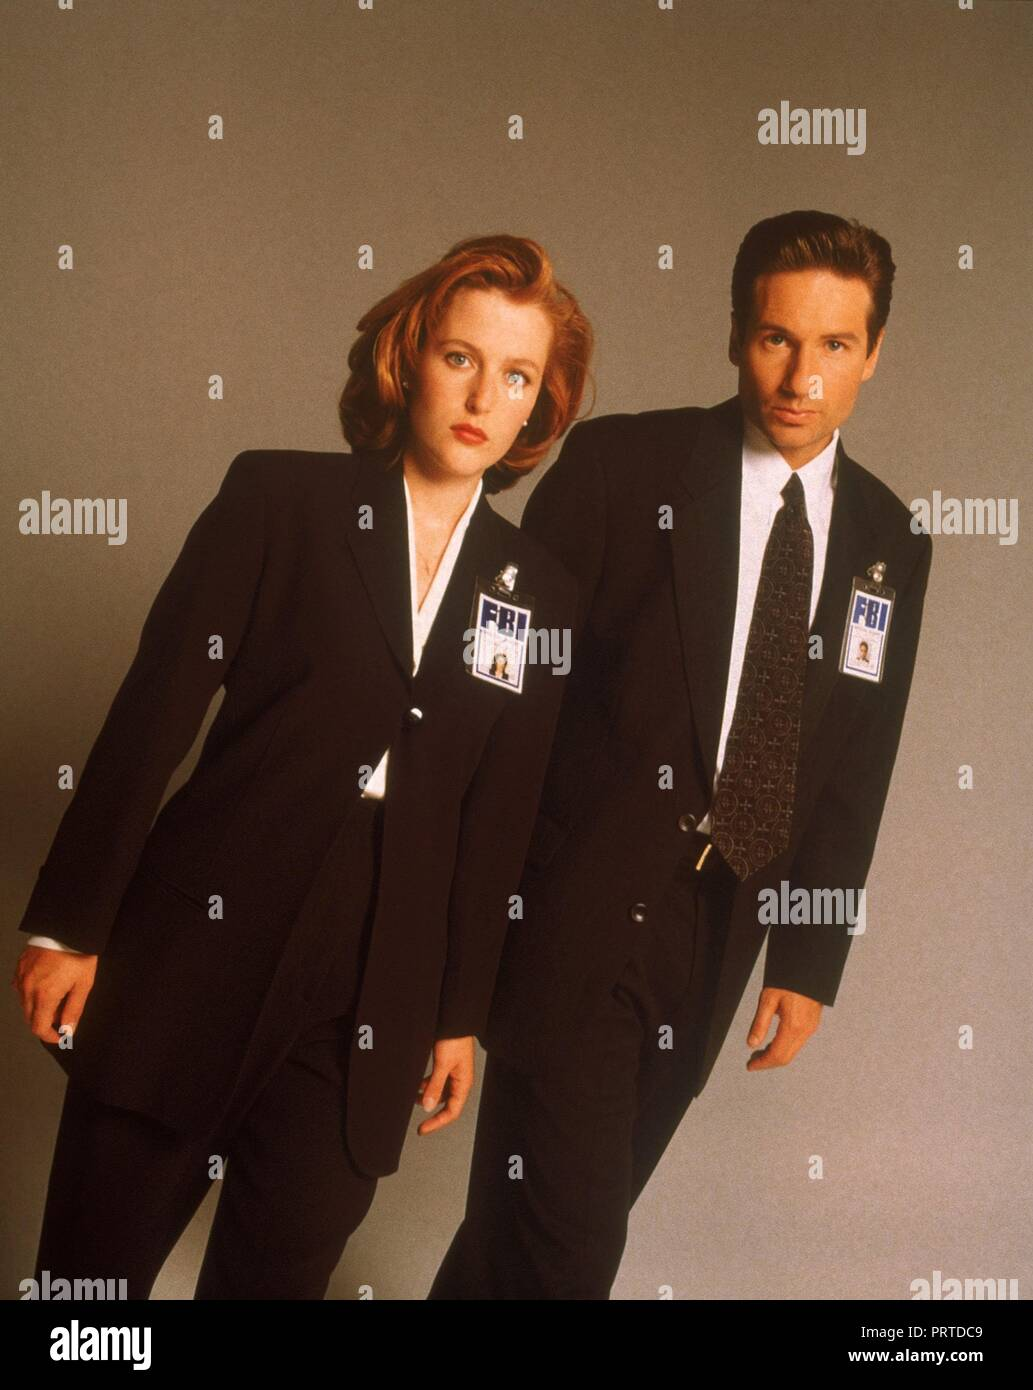 Original film title: THE X FILES. English title: THE X FILES. Year: 1993. Director: CHRIS CARTER; ROB BOWMAN; DAVID NUTTER. Stars: DAVID DUCHOVNY; GILLIAN ANDERSON. Credit: FOX FILMS / Album - Stock Image